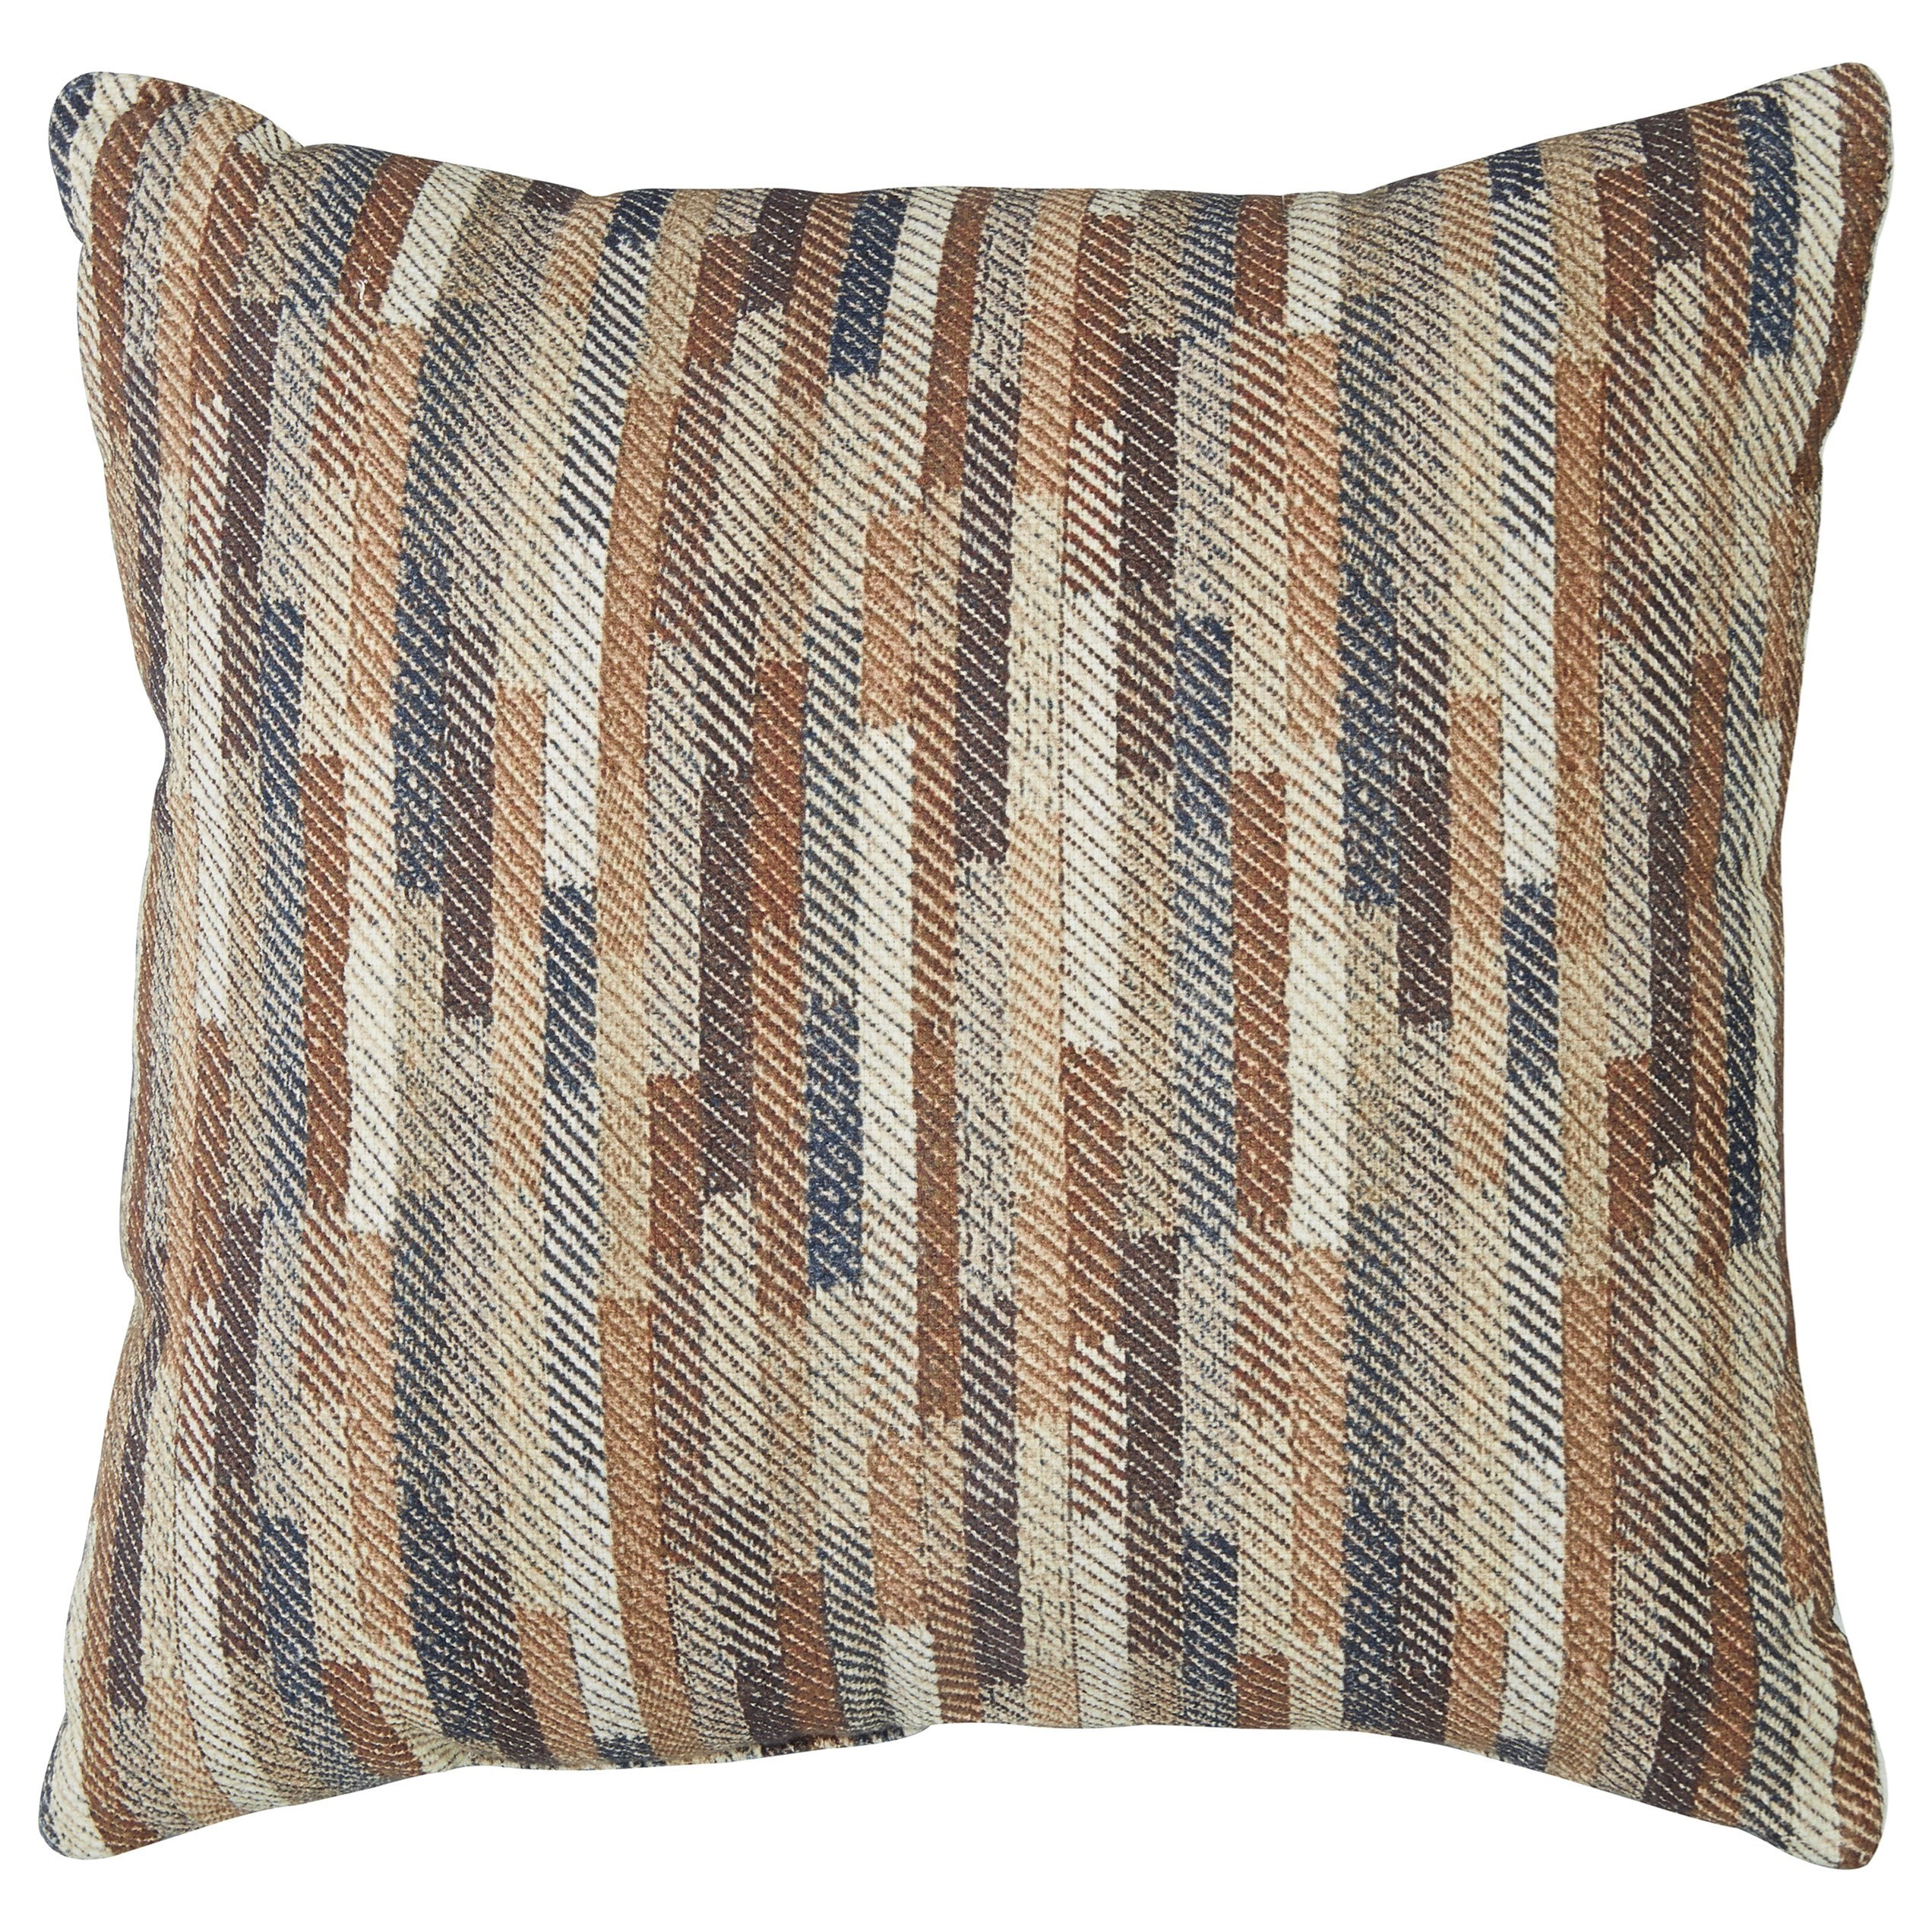 Daru Cream/Brown/Blue Pillow